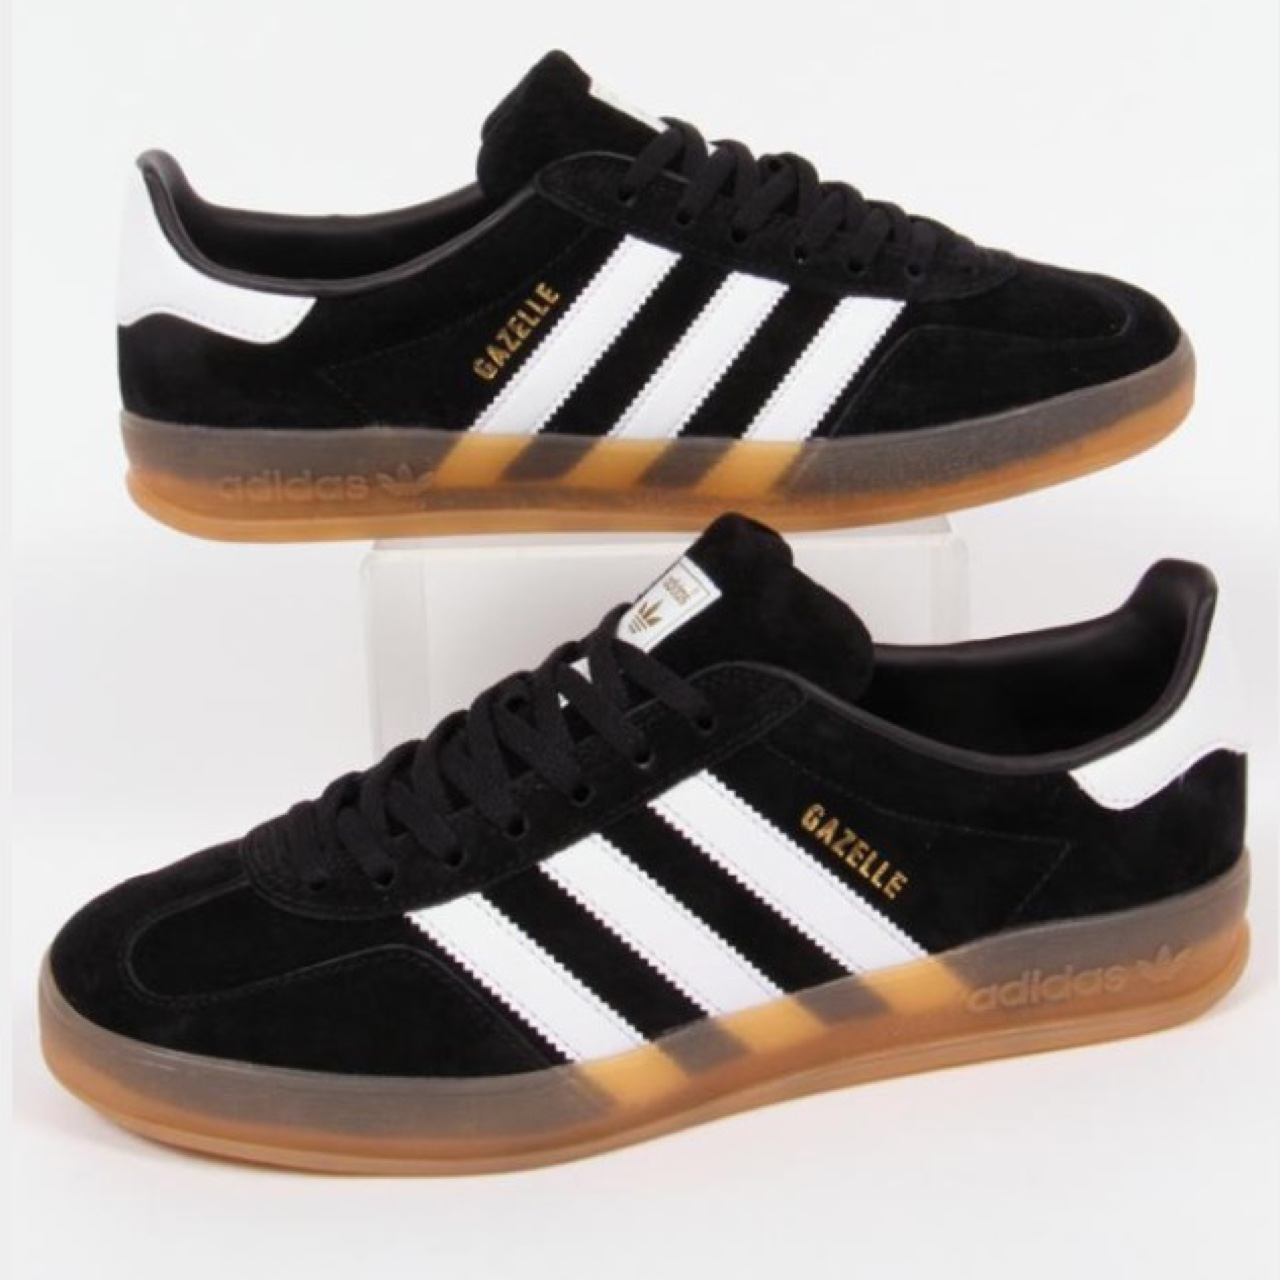 Adidas gaZelle indoor black and white trainers with...